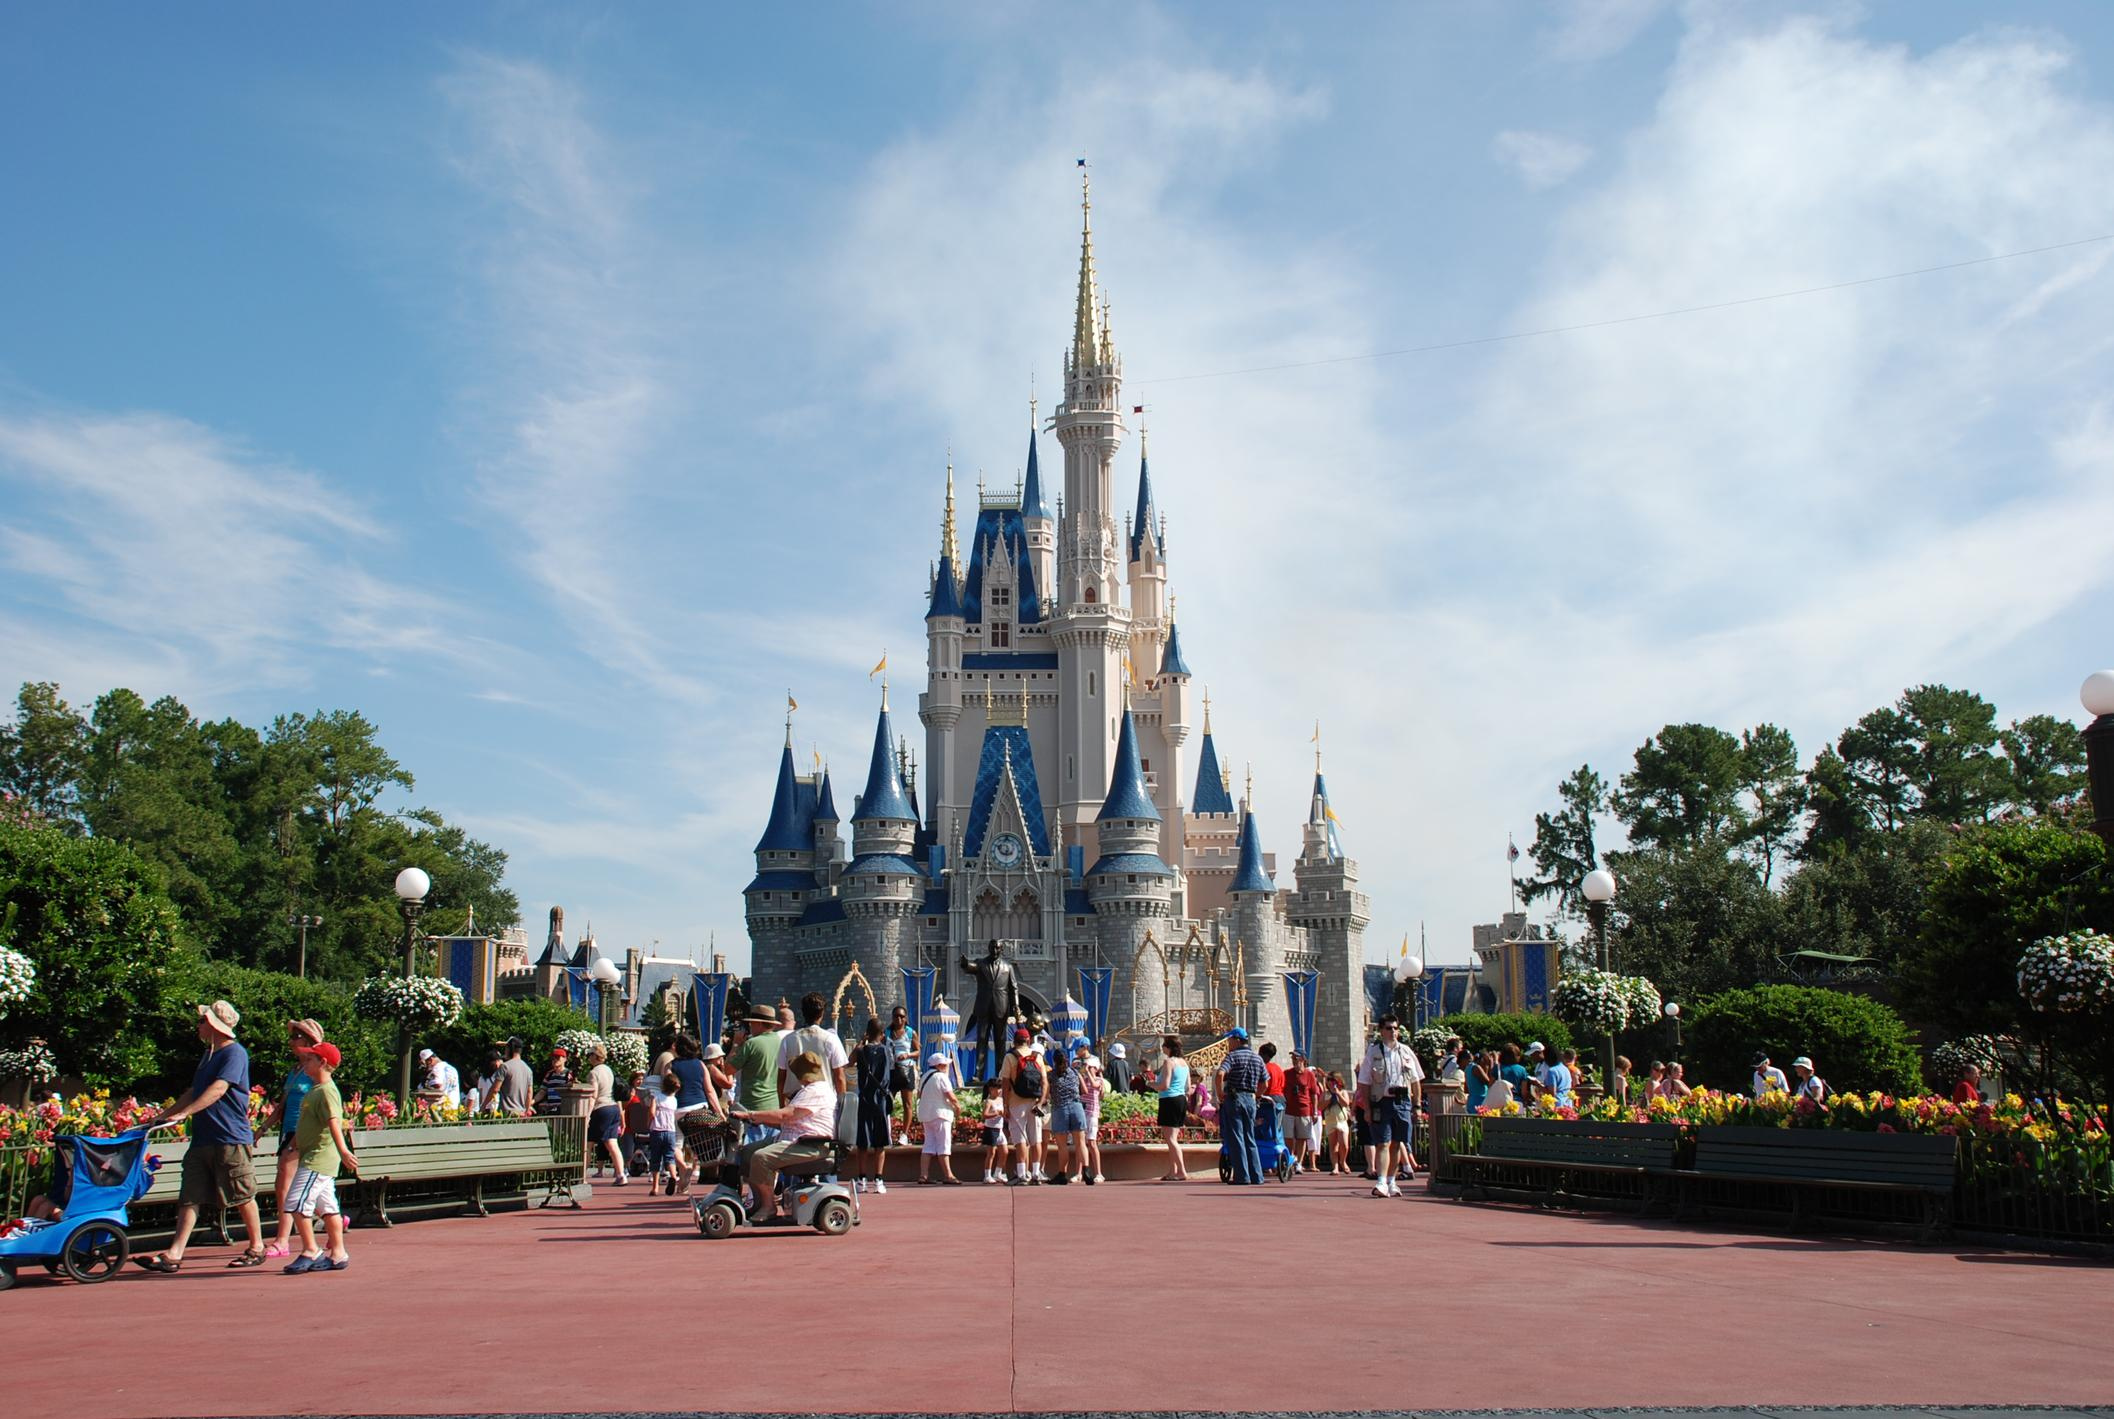 You Can Win a Night in Cinderella\'s Castle by Donating to This Charity